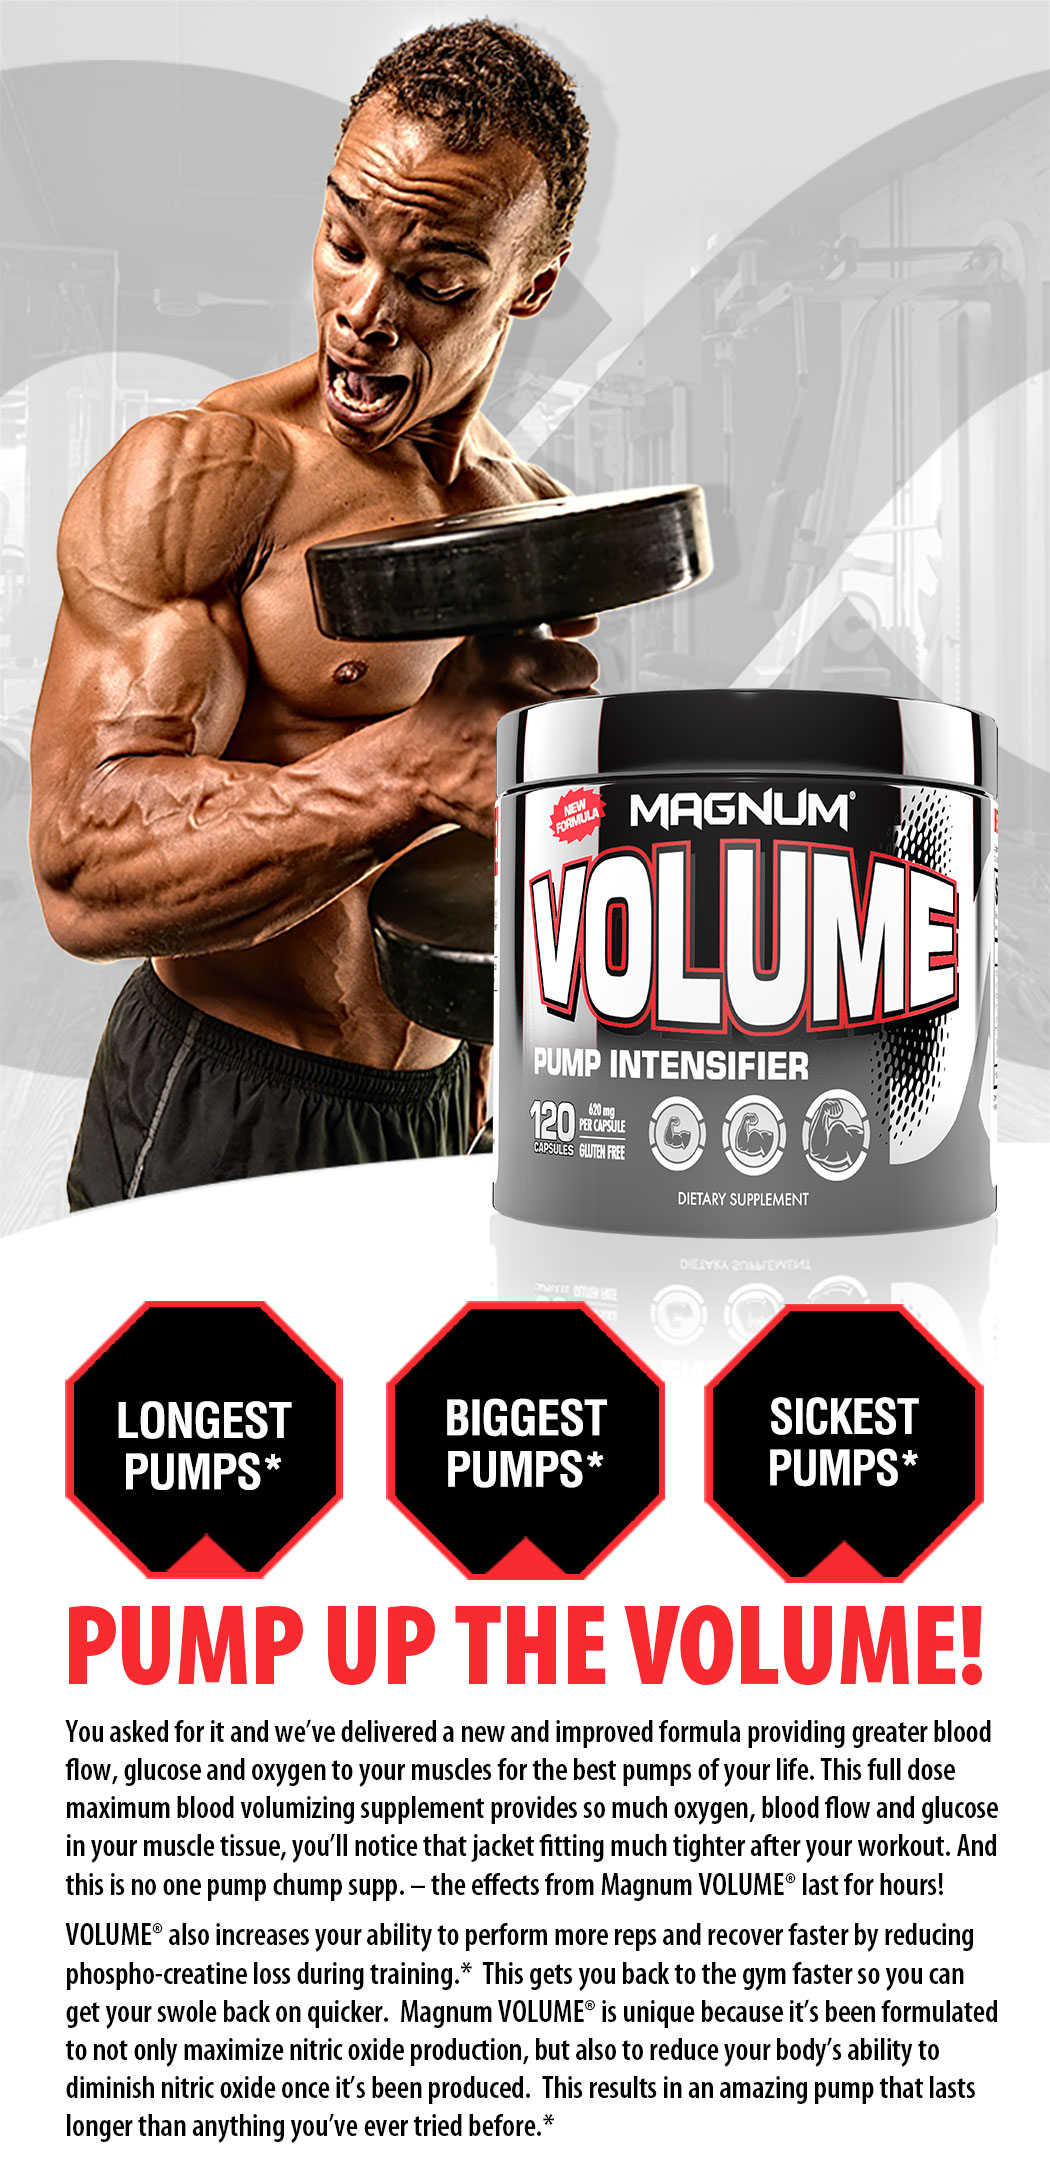 Volume supplement info